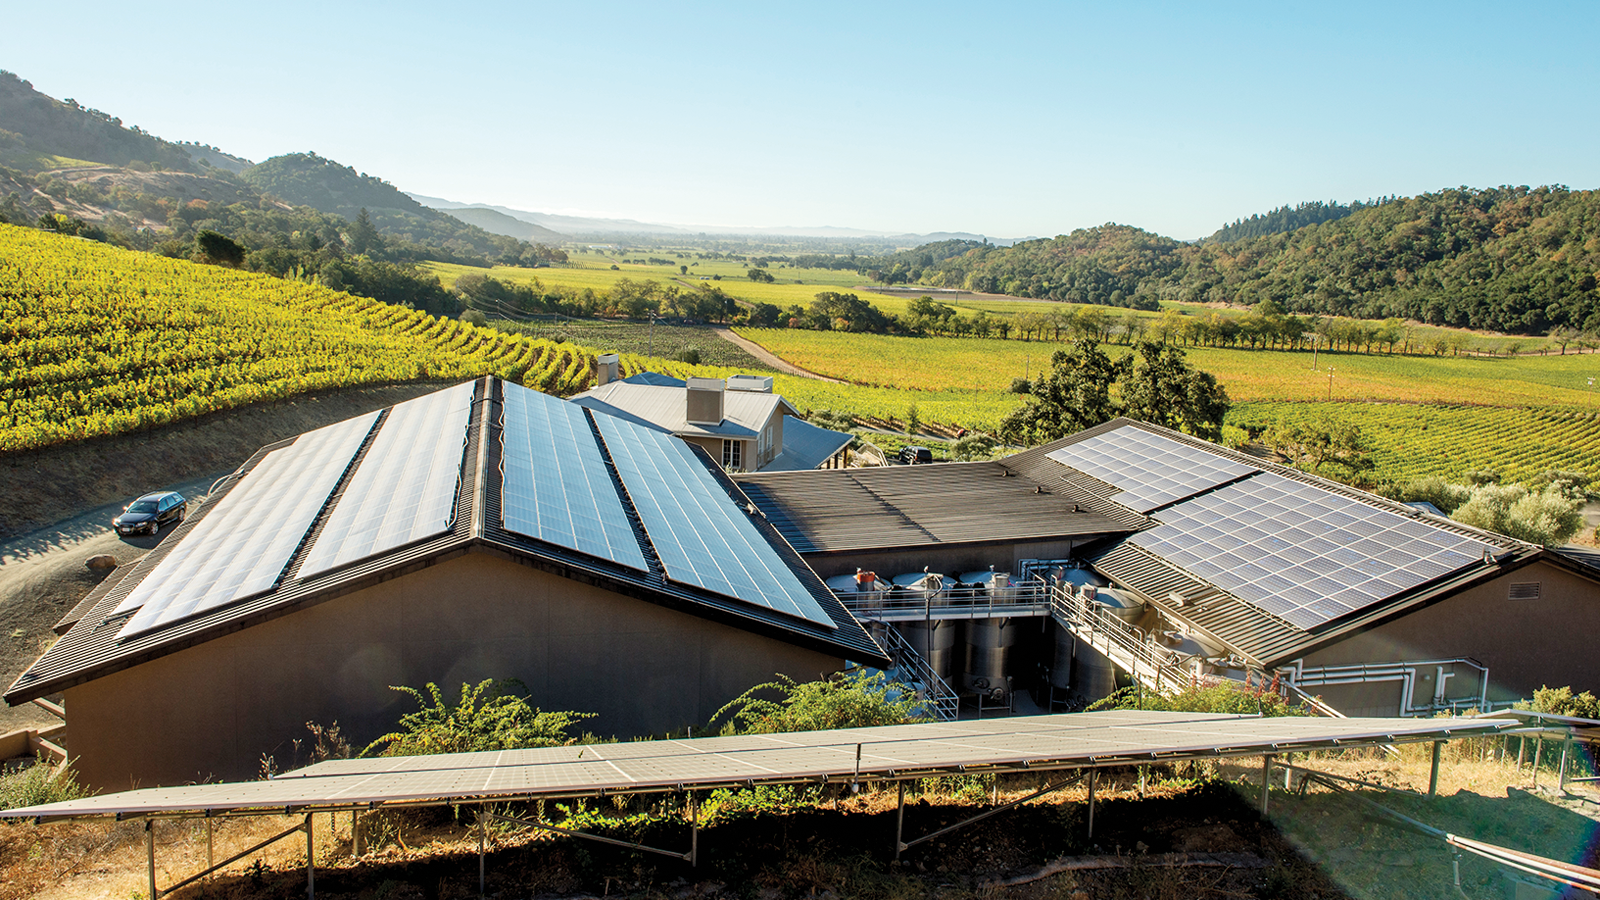 Wineries adopted green practices, such as installing solar panels.